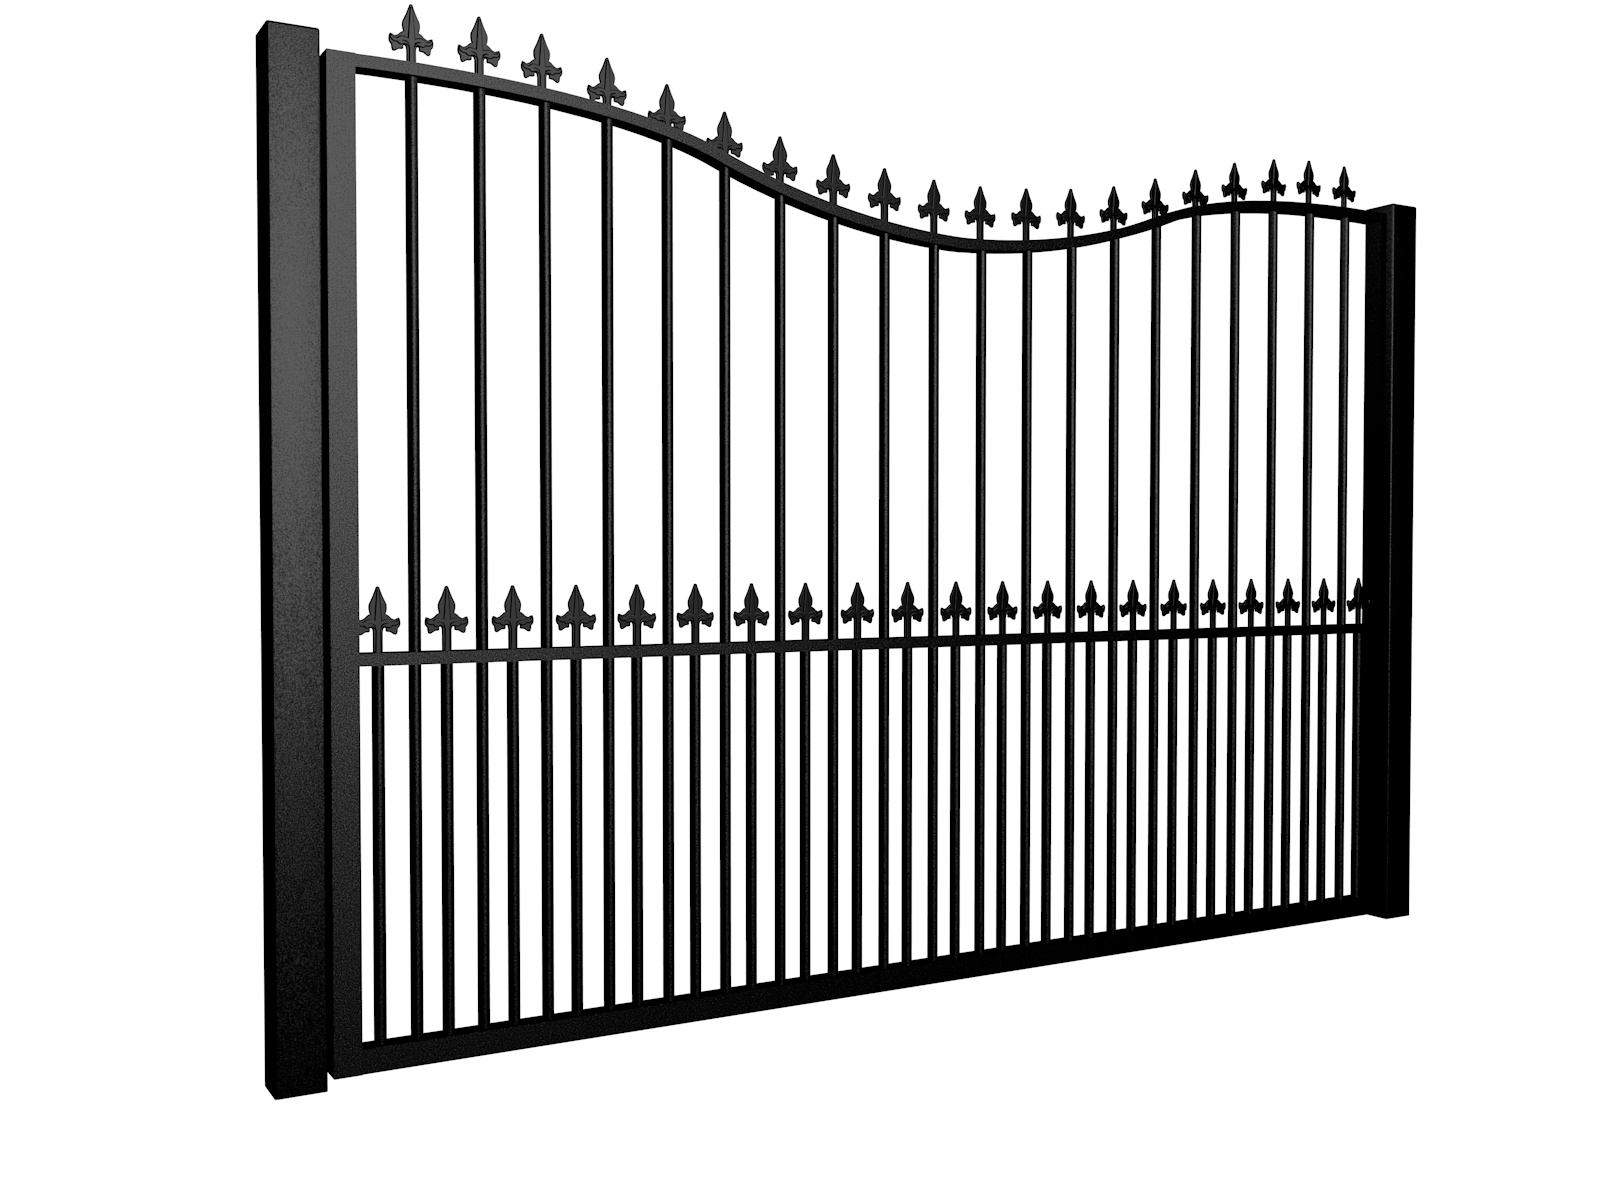 metal traditional style automated driveway gate with bow top finials and dog bars